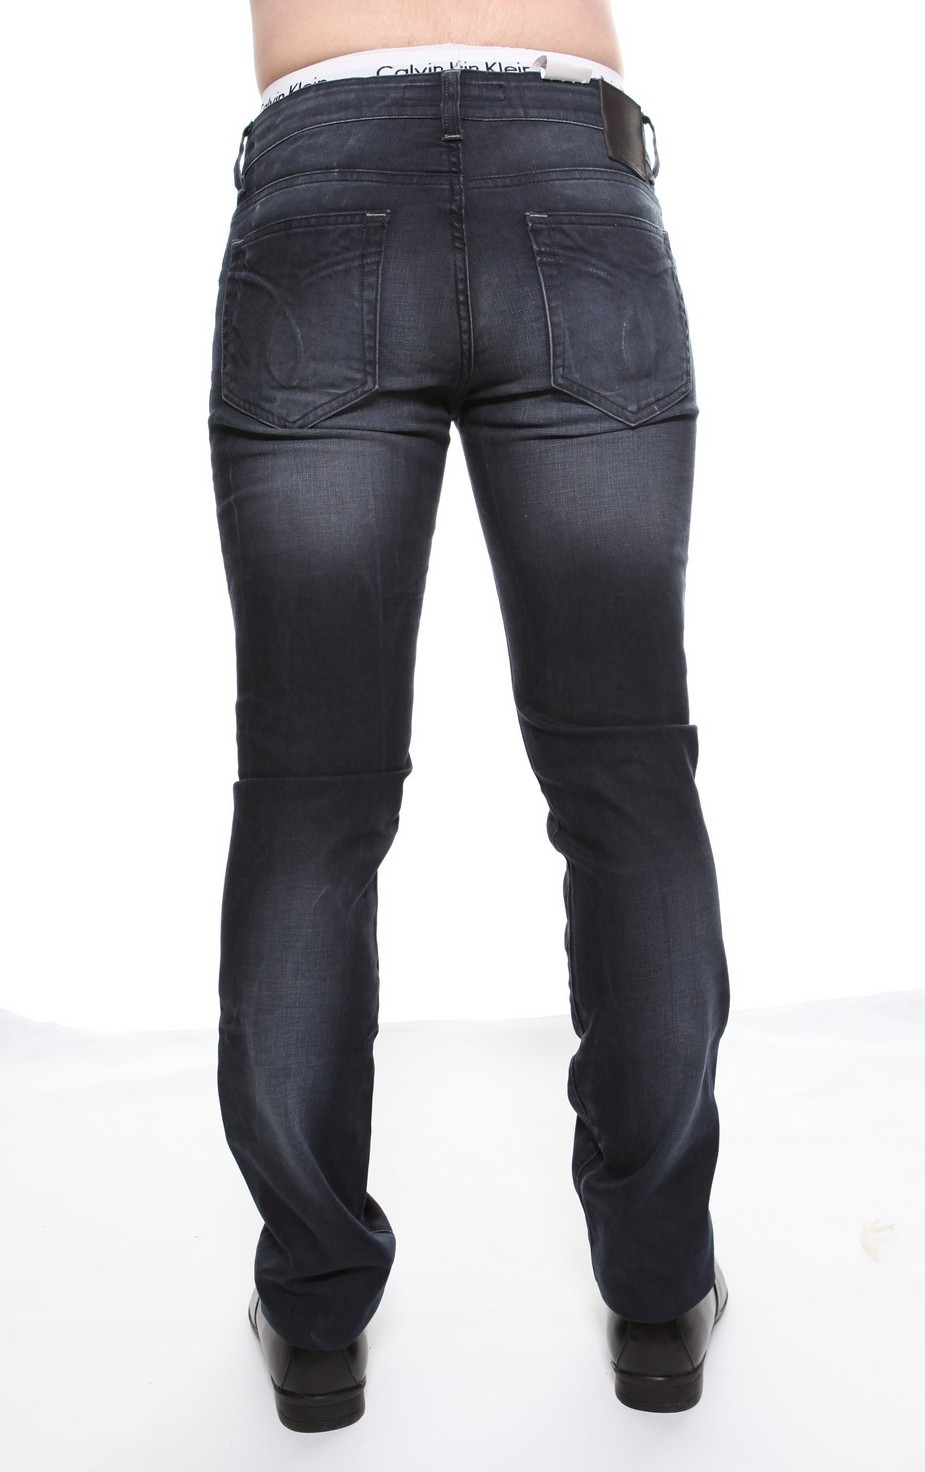 Dark Wash Skinny Jeans Womens